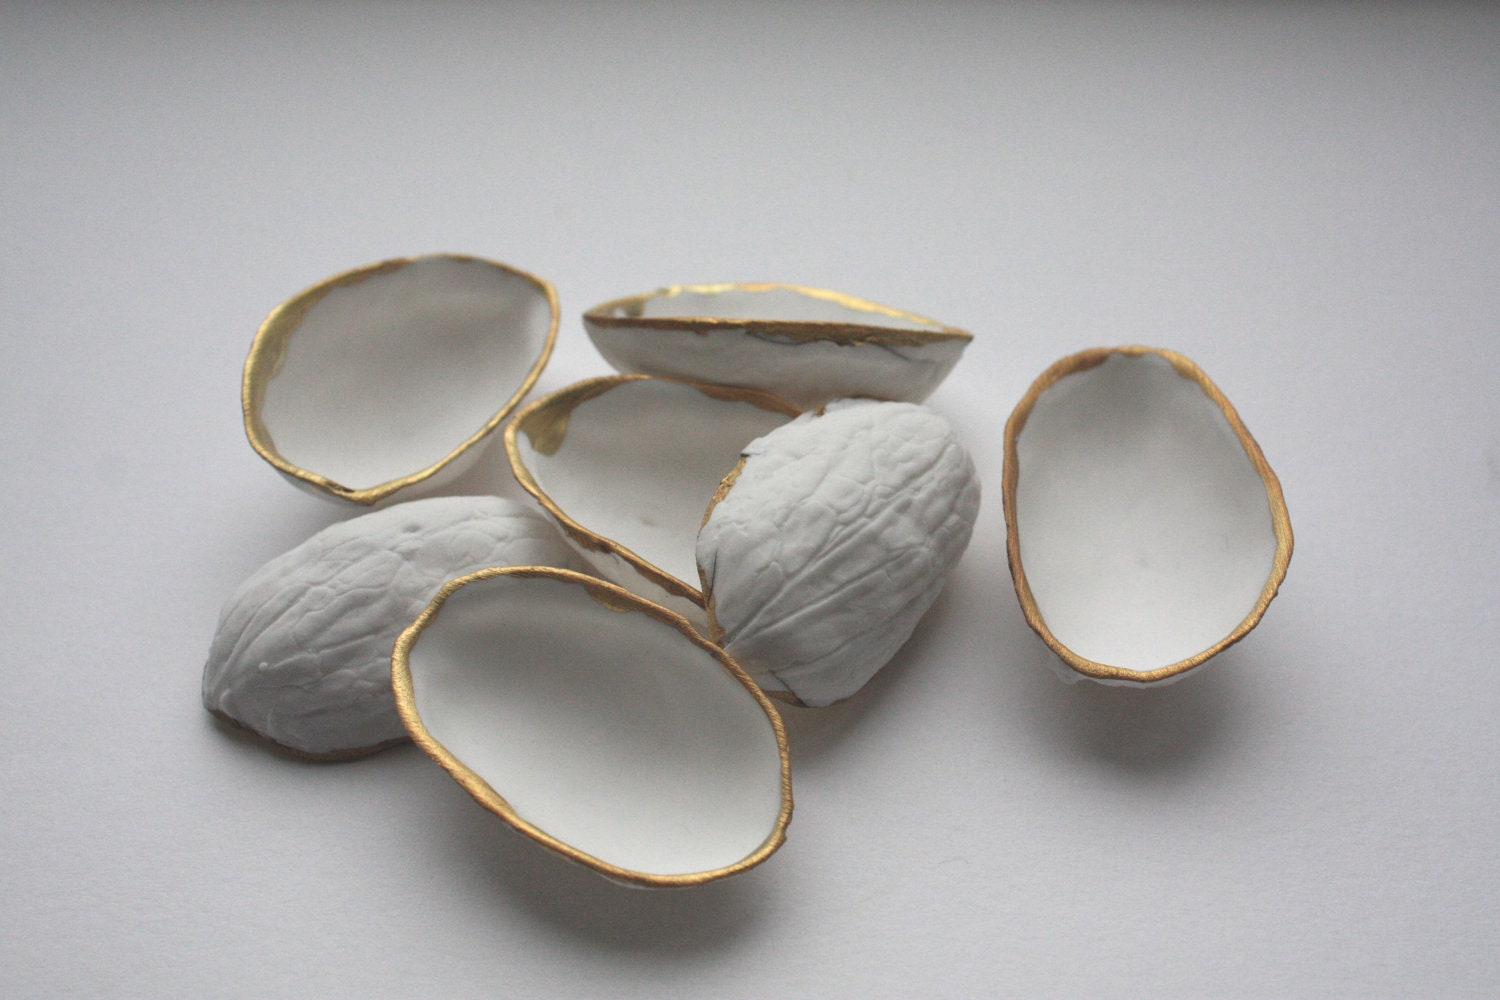 Stoneware walnut shells from English fine bone china and mat real gold - madebymanos